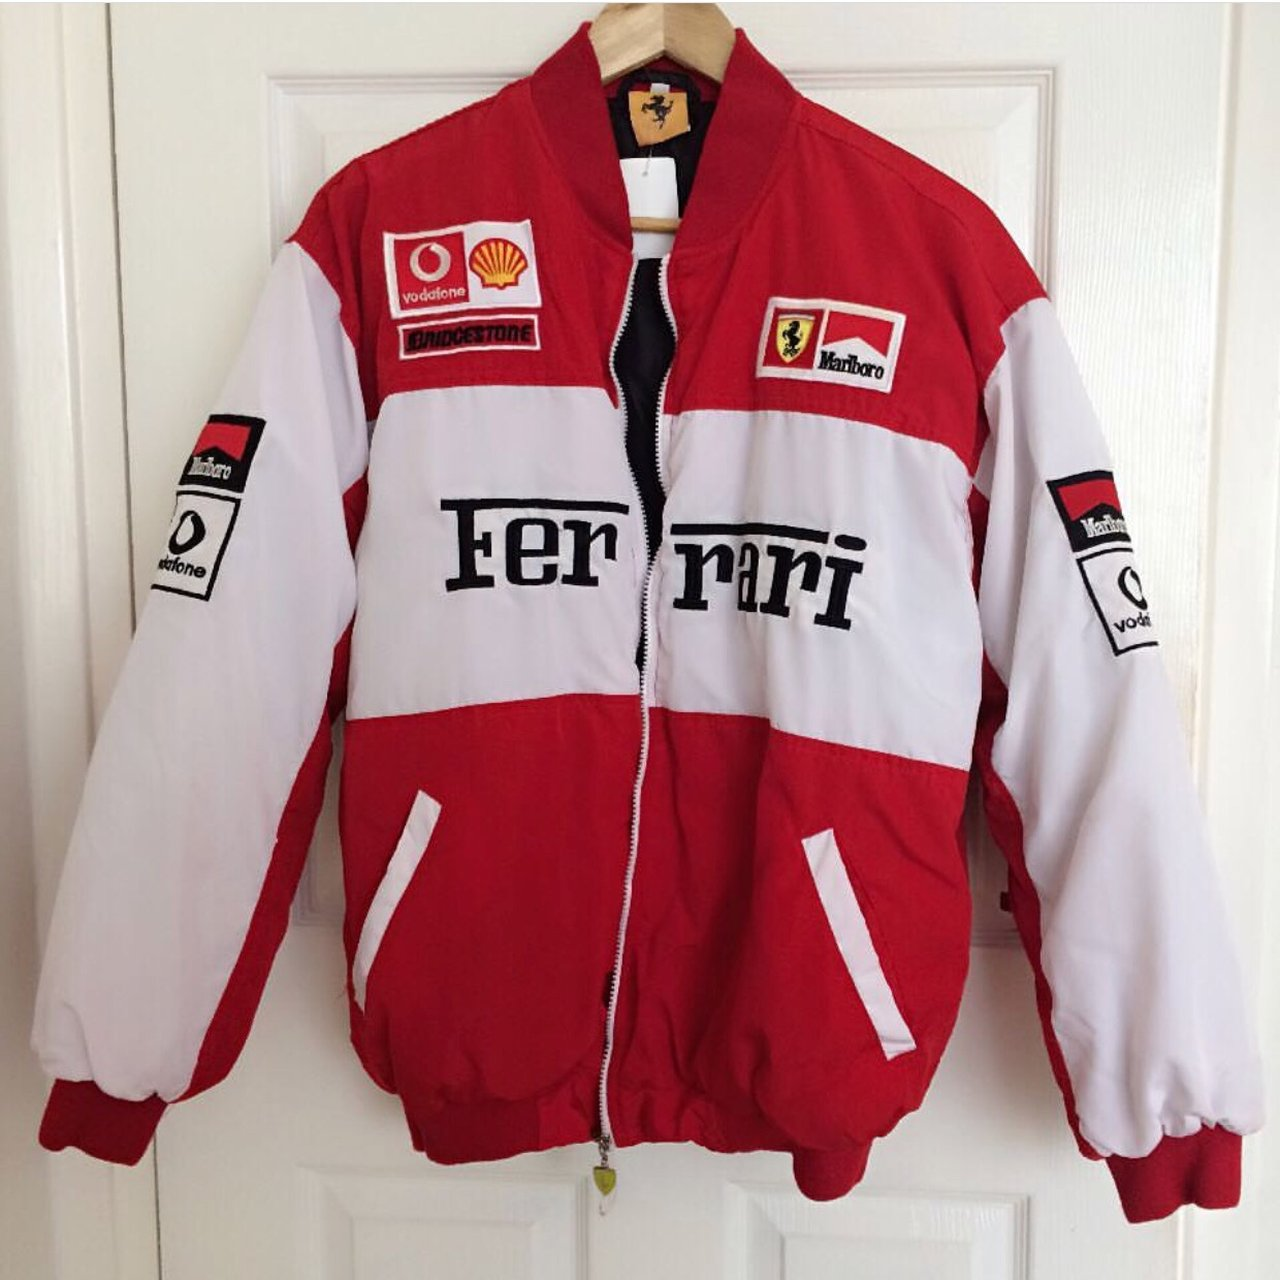 30e89bcc0e3 original-ferrari-jacket-(michael-schumacher)-very-rare-